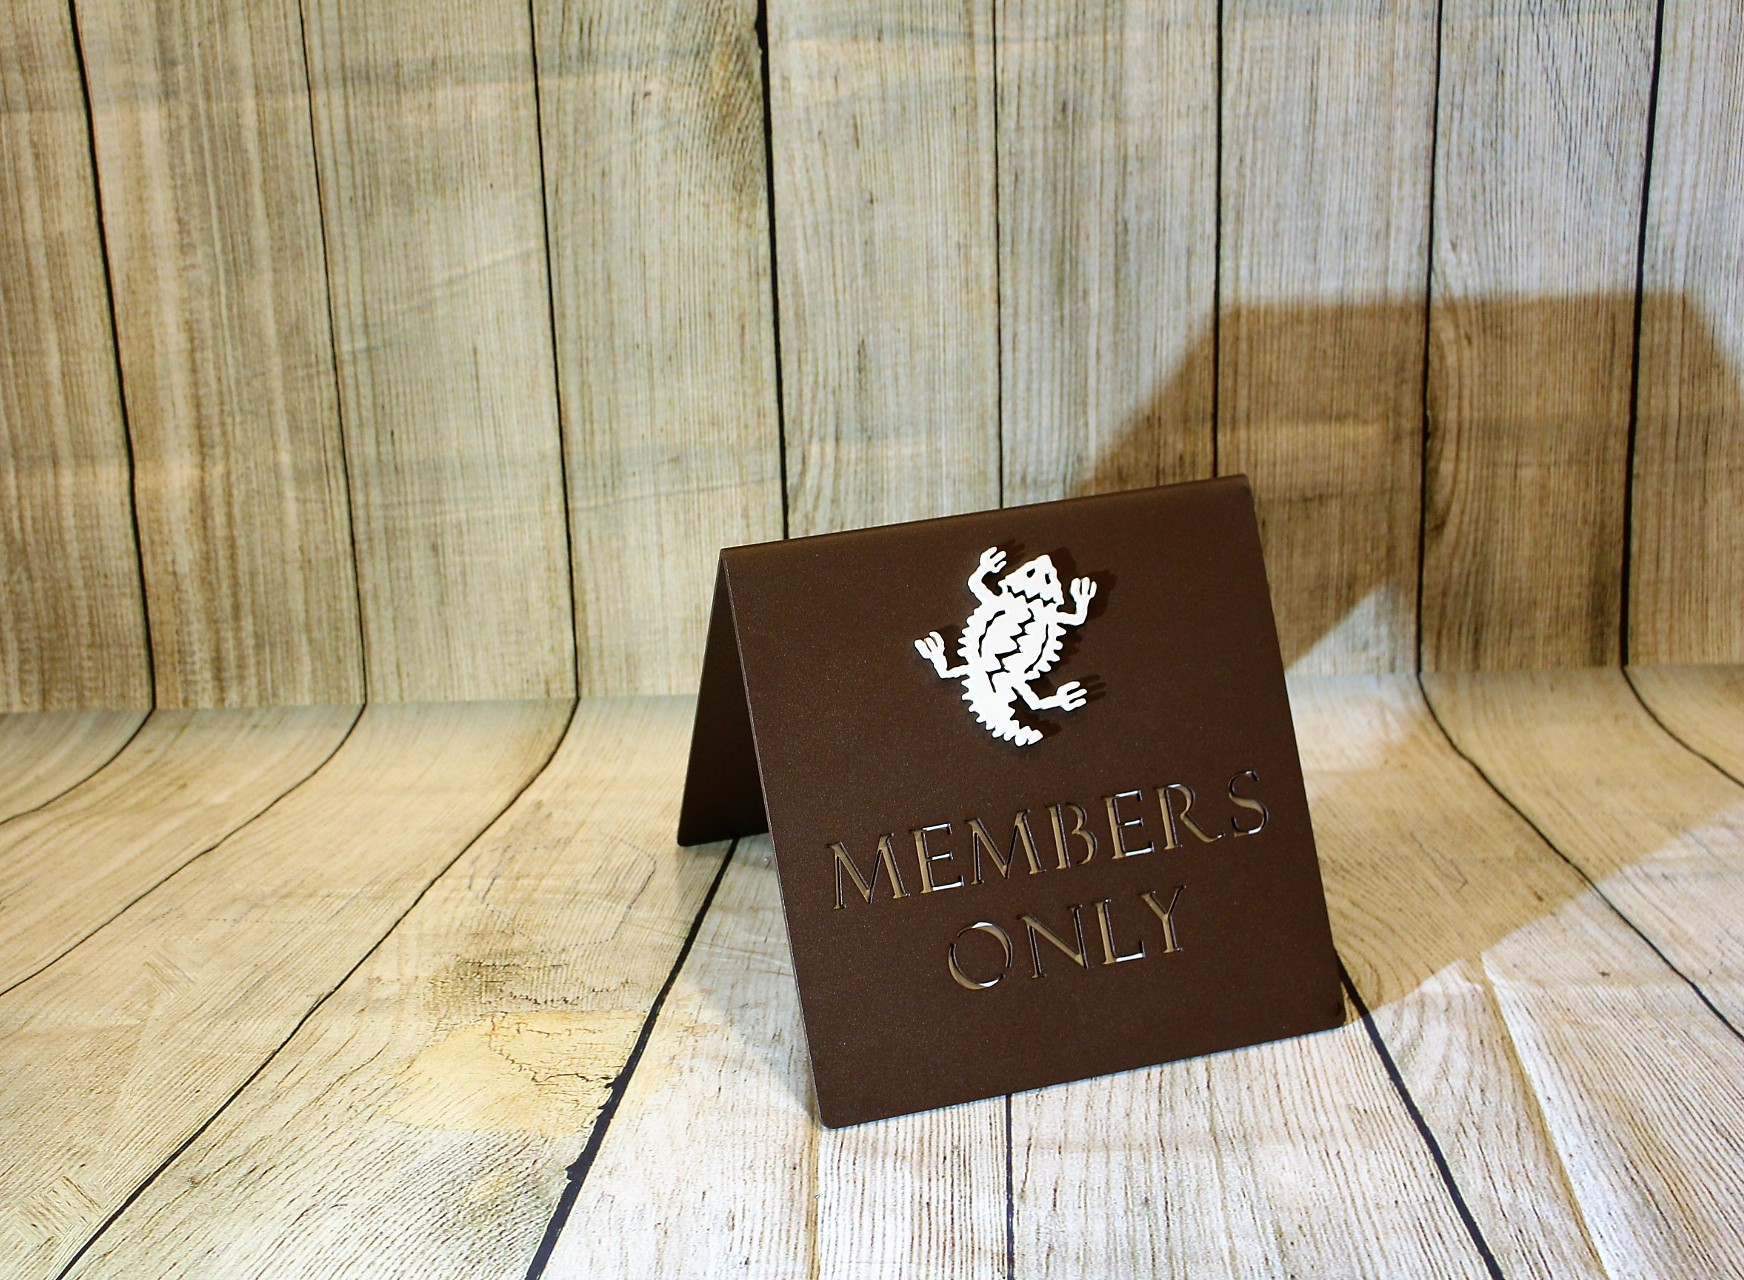 Members Only A-frame Sign -Troon North